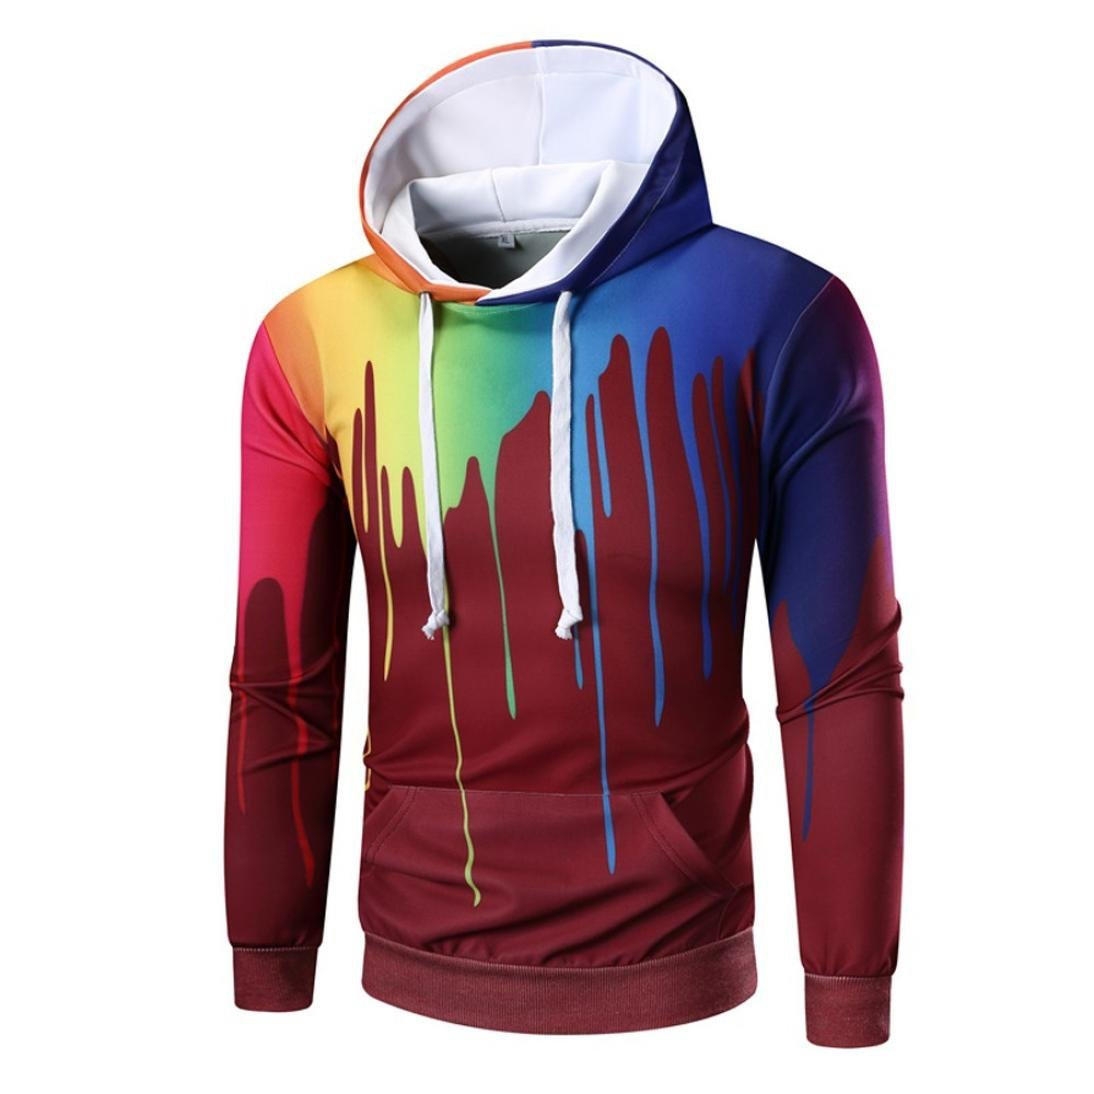 UJUNAOR Men's Long Sleeve Digital Print Hoodie Hooded Sweatshirt Tops Coat Outwear